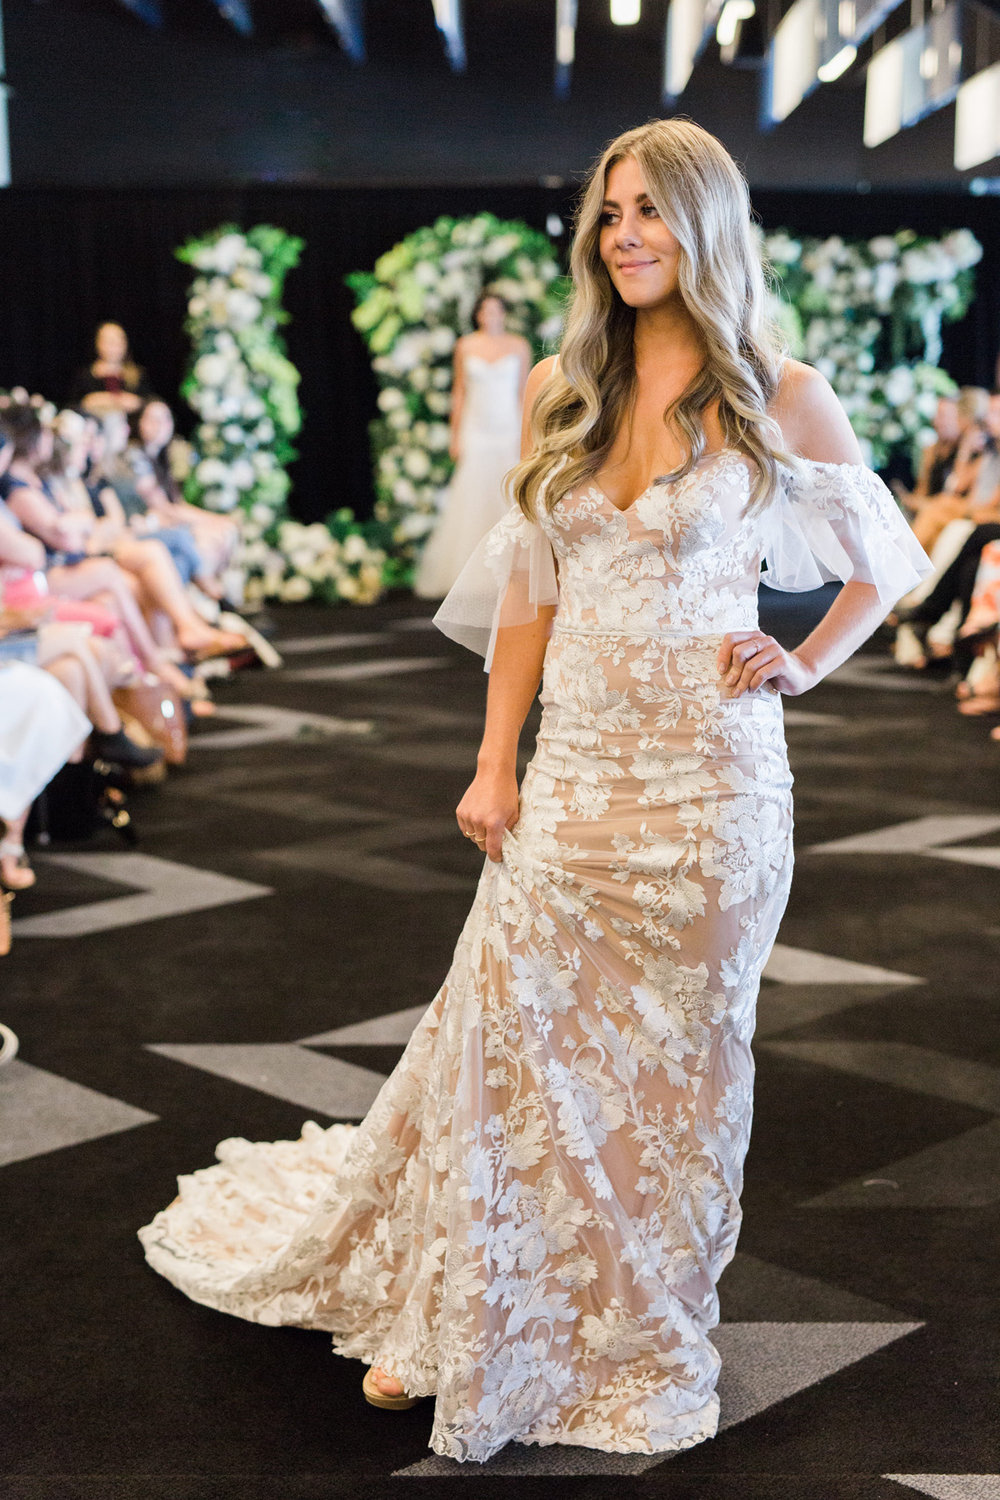 Love-Wedding-Festival-Sydney-Wedding-Gown-Instyle-Bridal-10.jpg